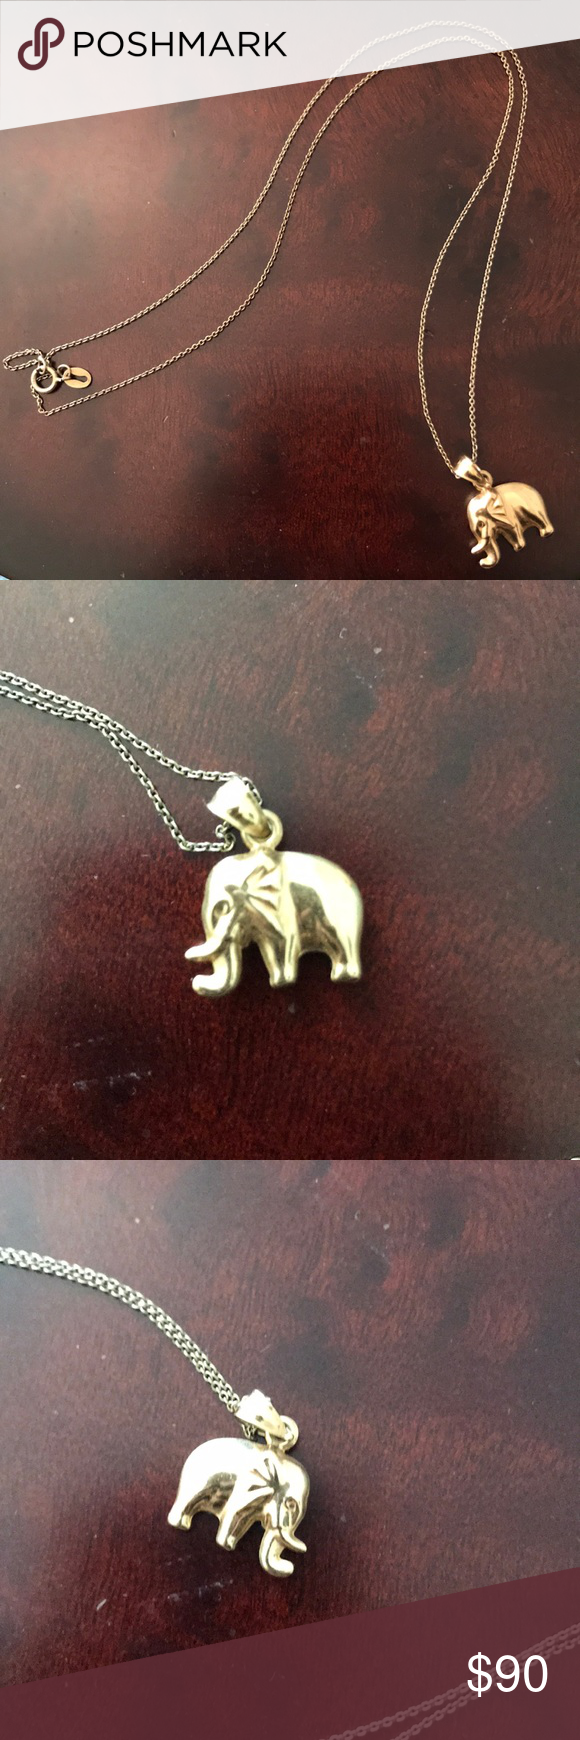 10 Karat Gold Elephant Pendant With 925 Gold Chain Elephant Pendant In 10 Karat Gold 925 Gold Chain Made Gold Elephant Pendant Elephant Pendant Gold Elephant